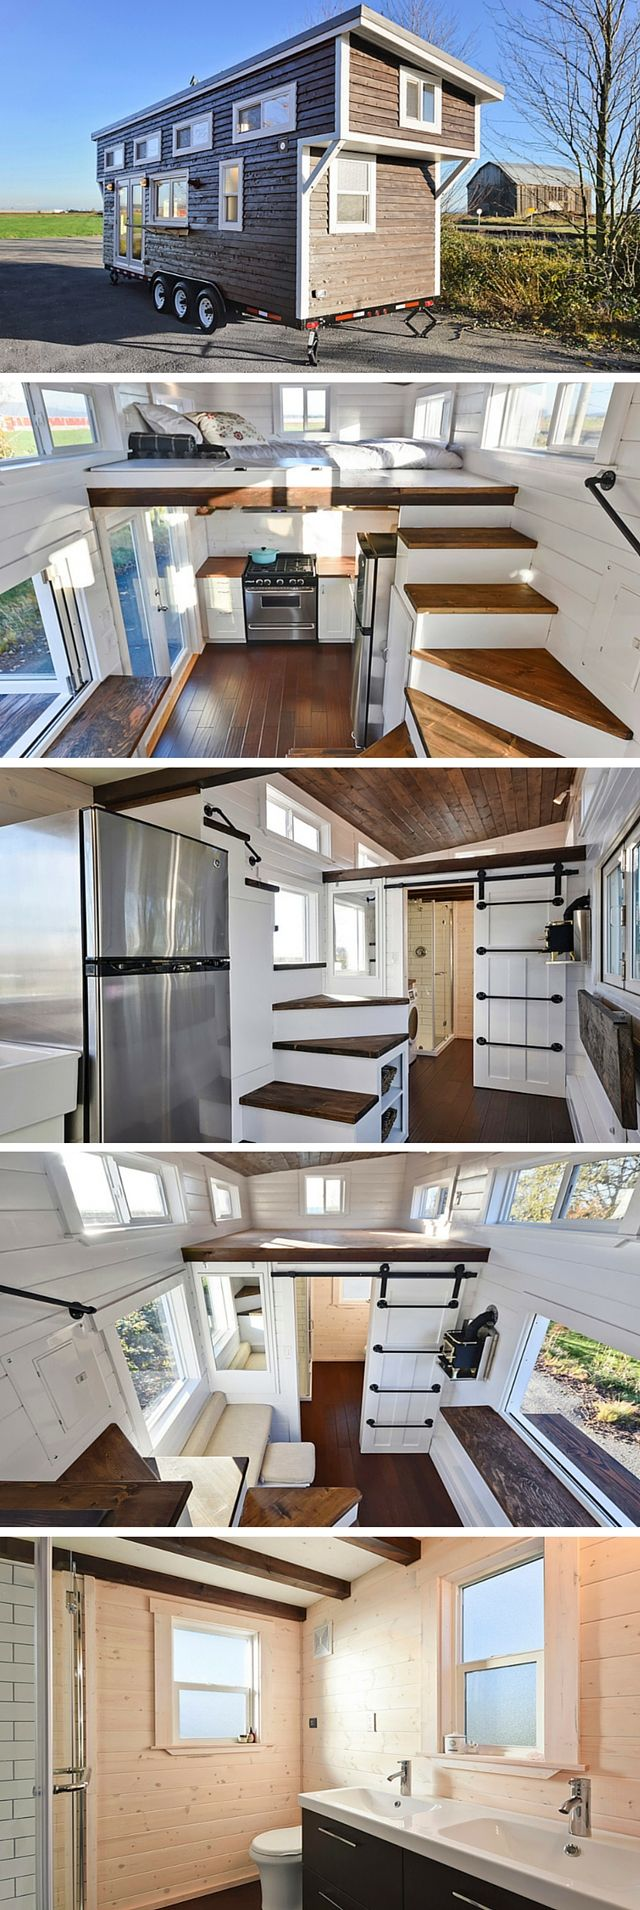 Best 25+ Tiny house design ideas on Pinterest | Tiny living, Small ...